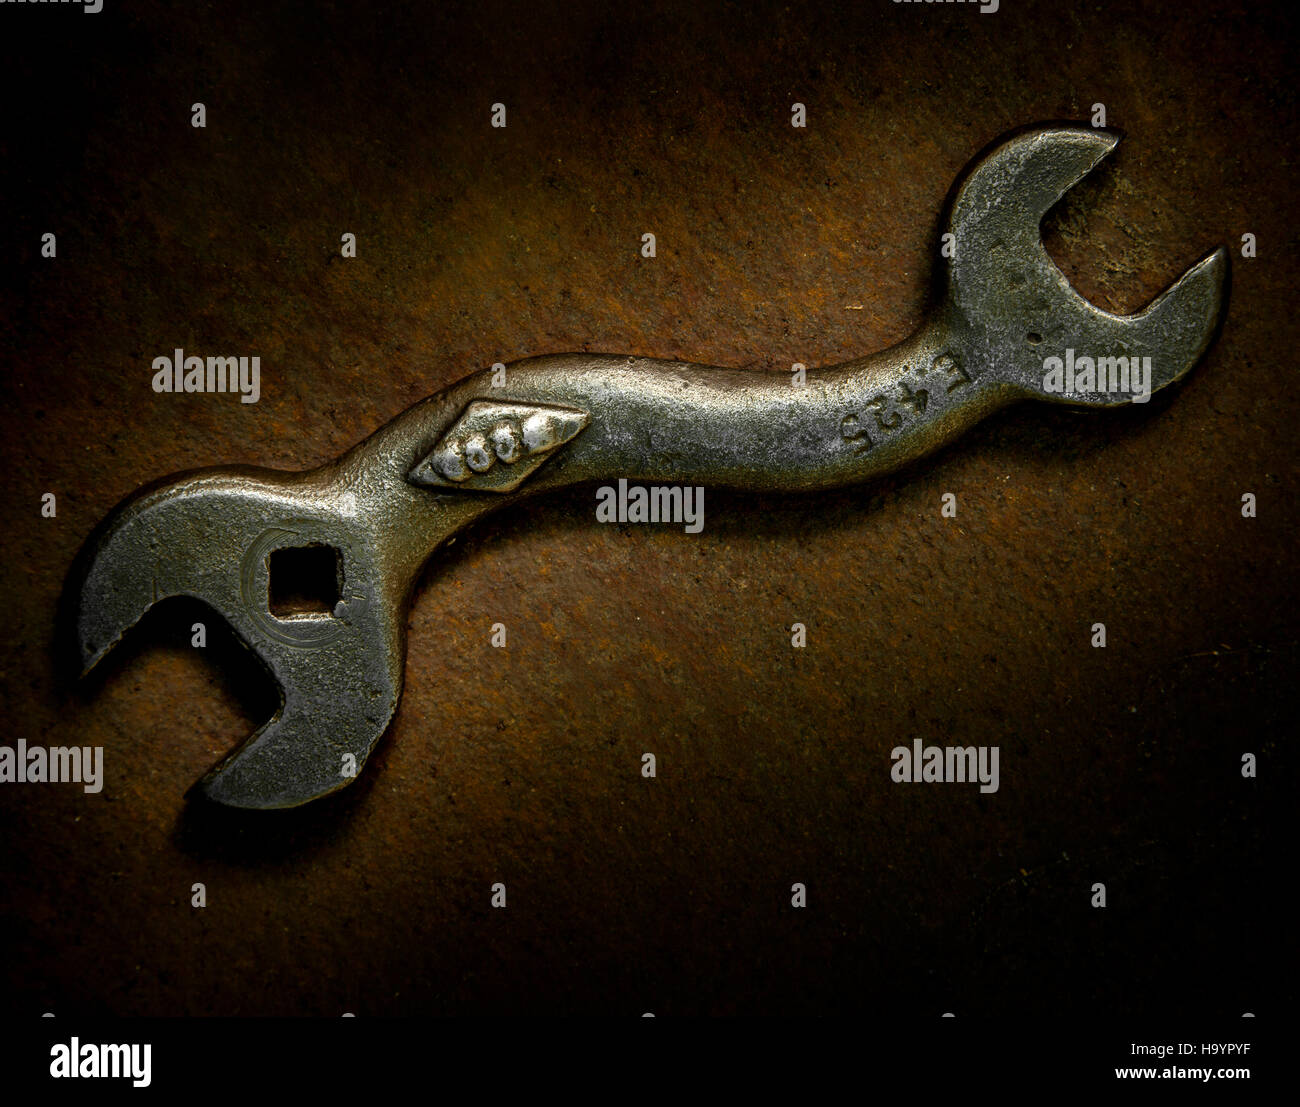 Photograph using Light Painting of an old bent spanner on a rusty metal background. - Stock Image